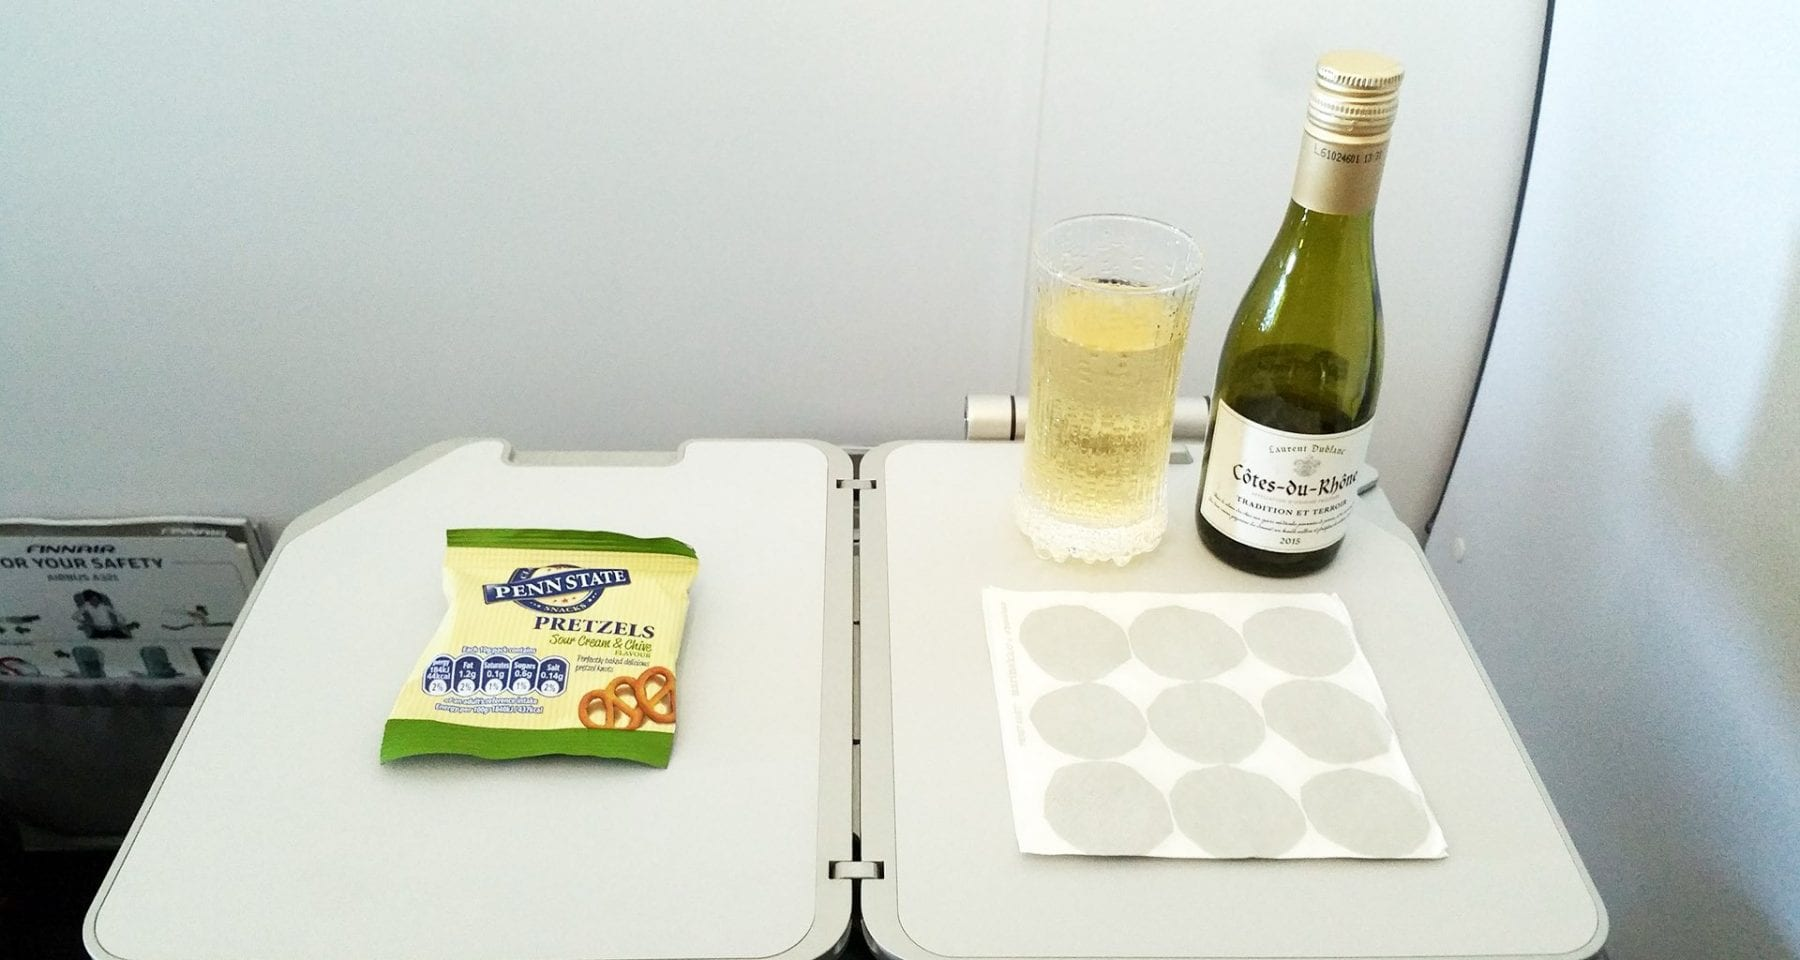 Finnair inflight wine and snack